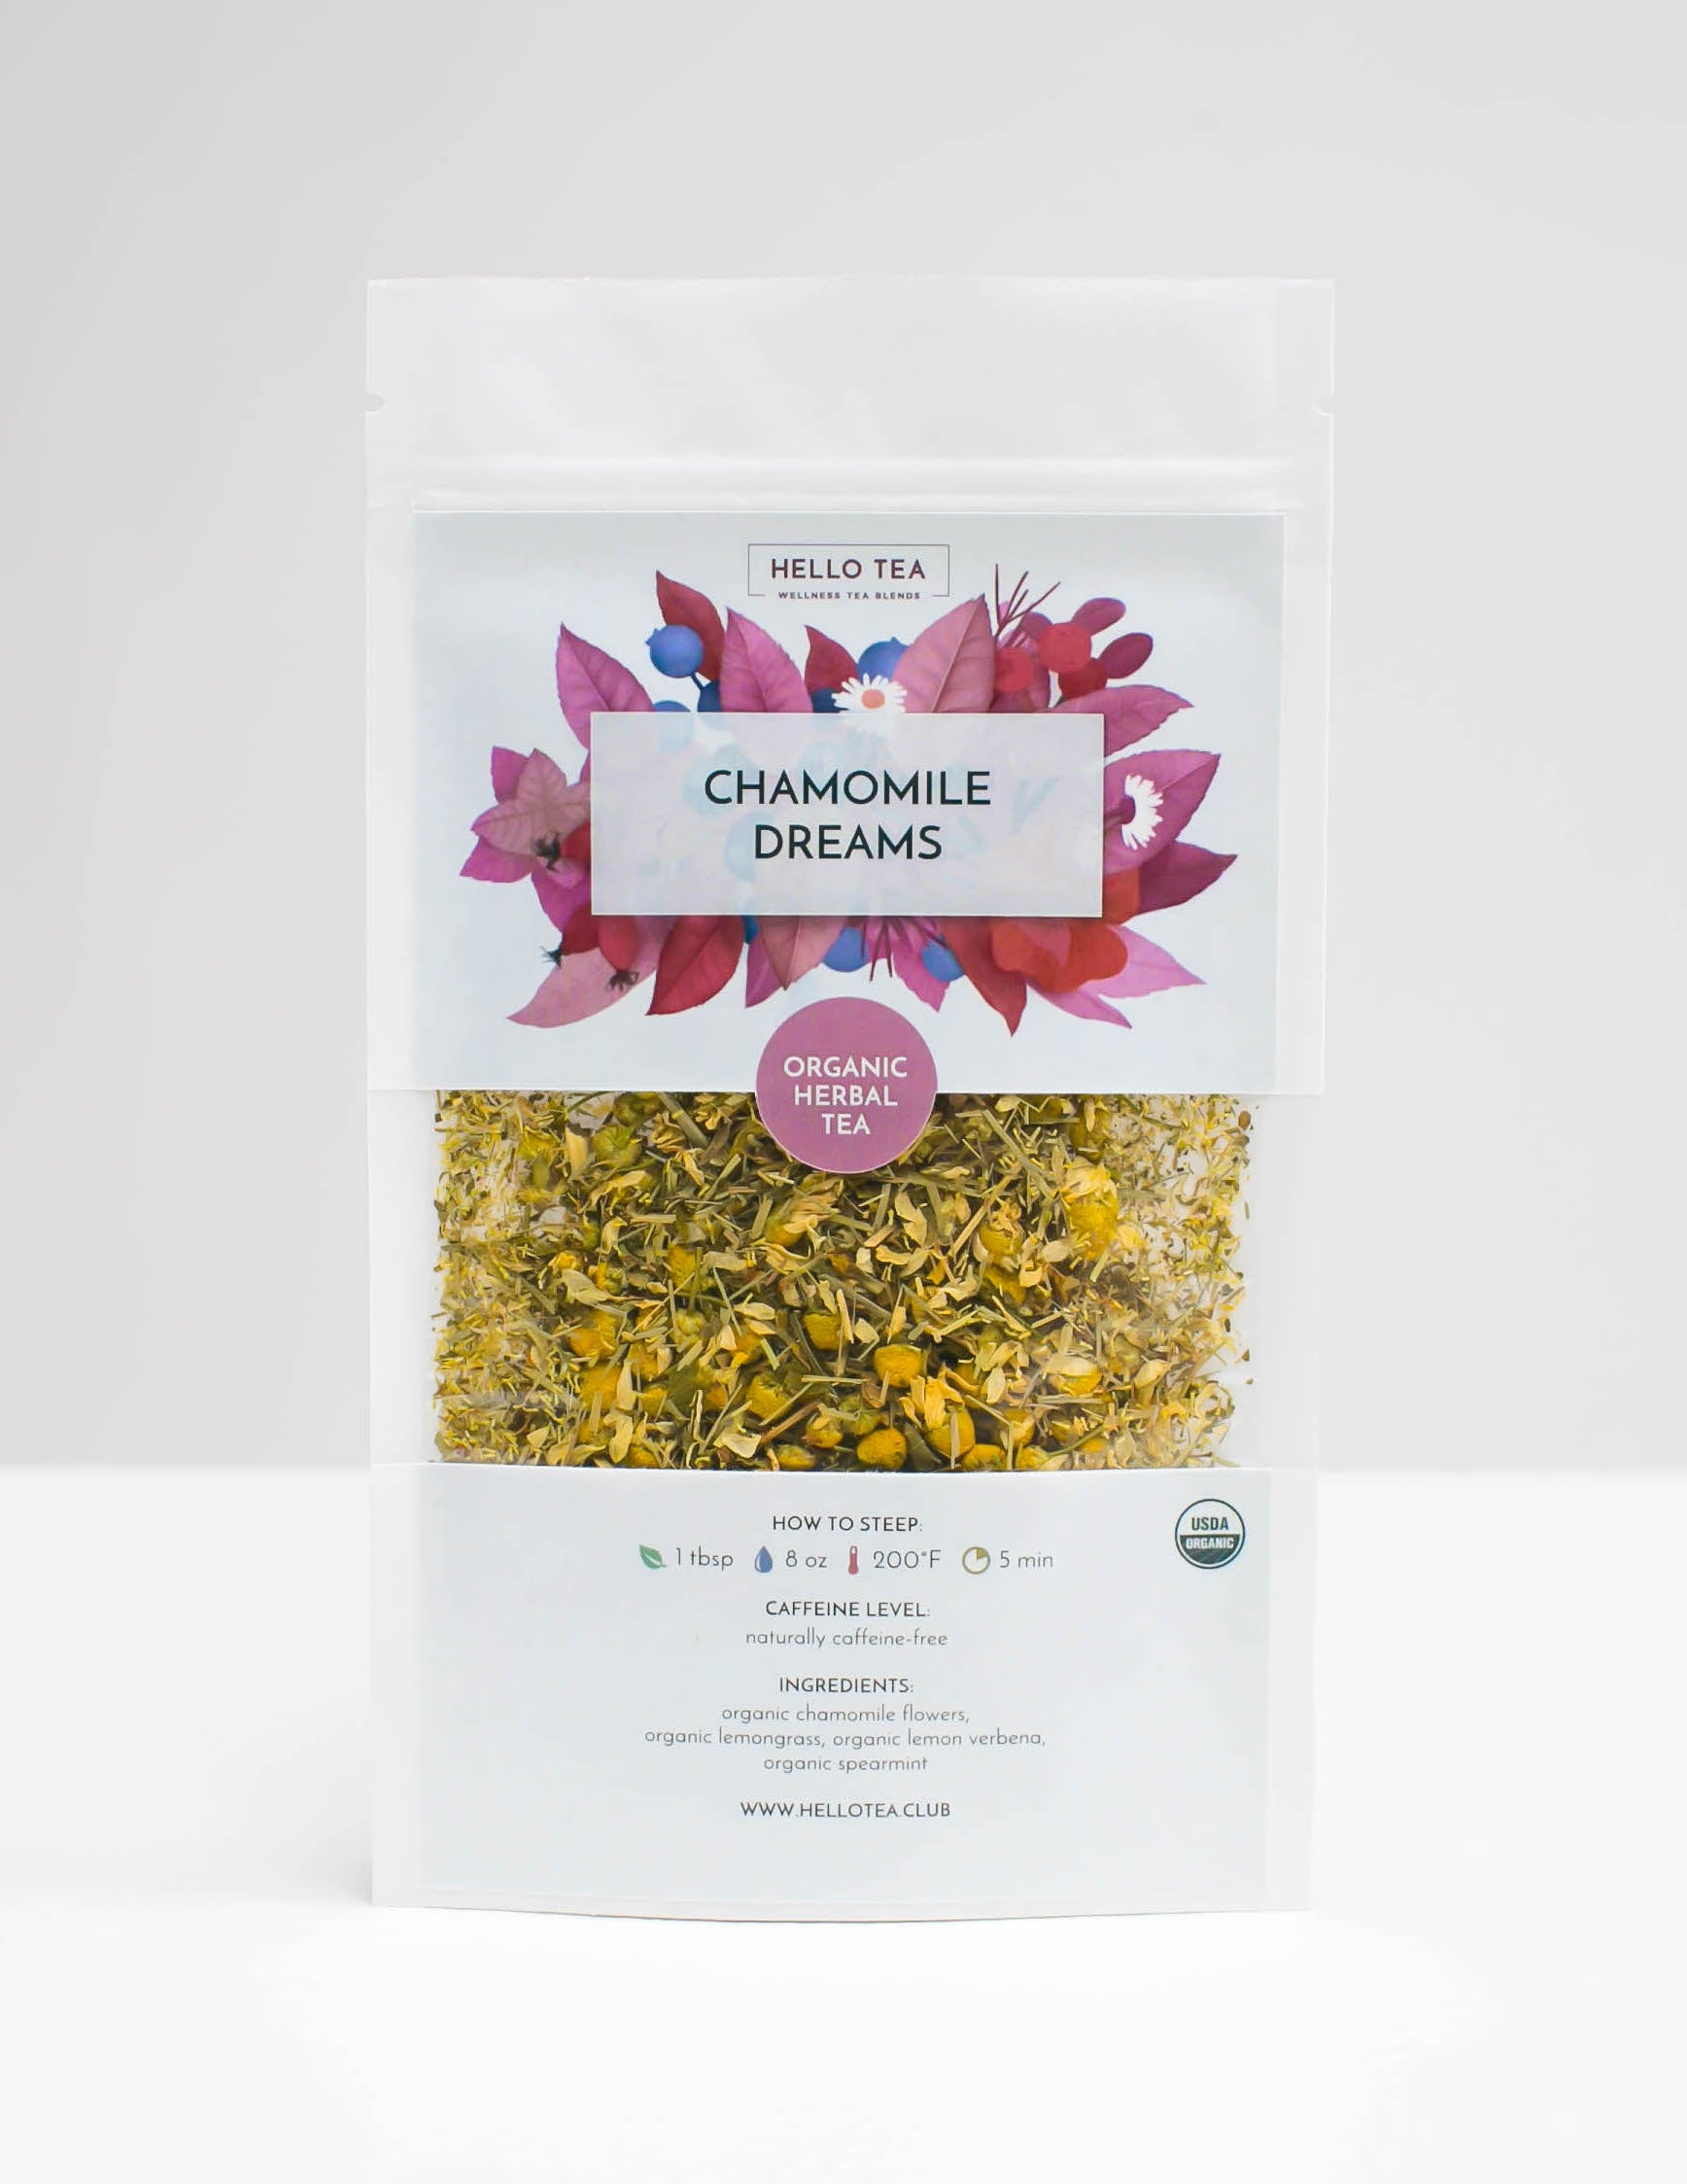 Stand up pouch with Hello Tea Chamomile Dreams Loose Leaf Tea